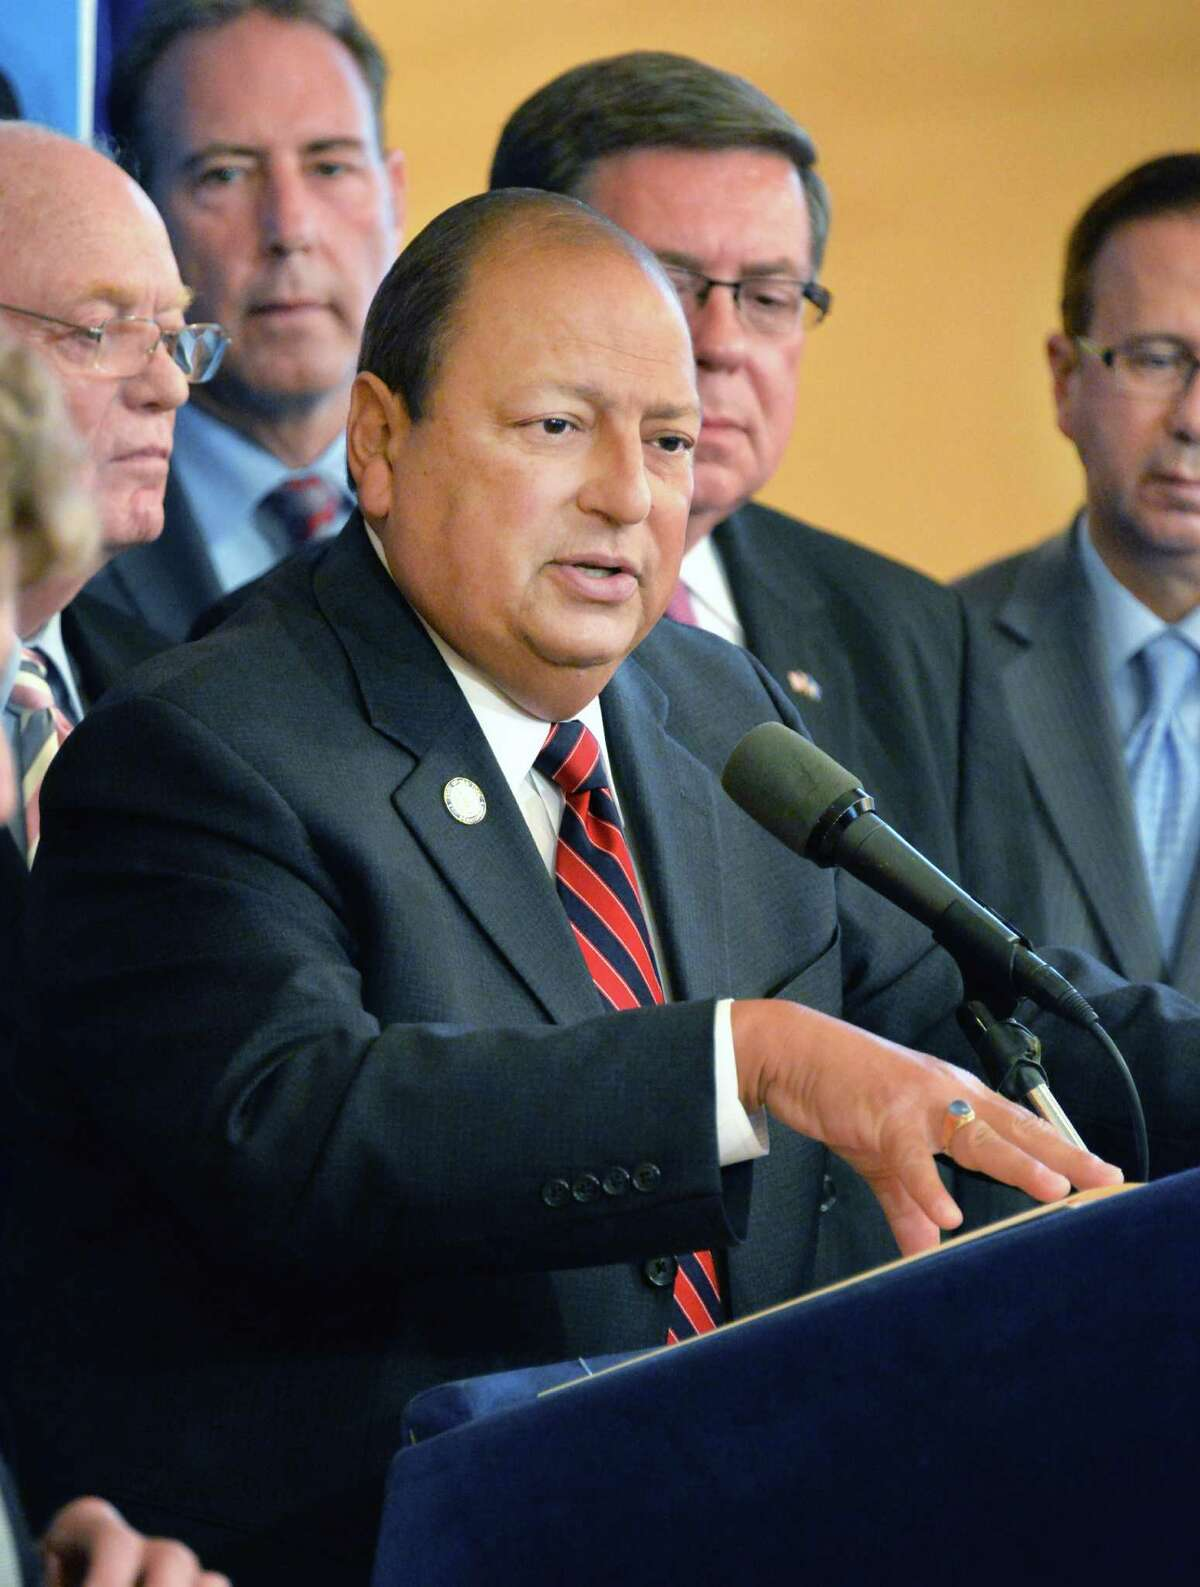 State Senator Tom Libous speaks during a news conference on the Public Assistance Integrity Act Tuesday, June 18, 2013, at the Capitol in Albany, N.Y. (John Carl D'Annibale / Times Union archive)